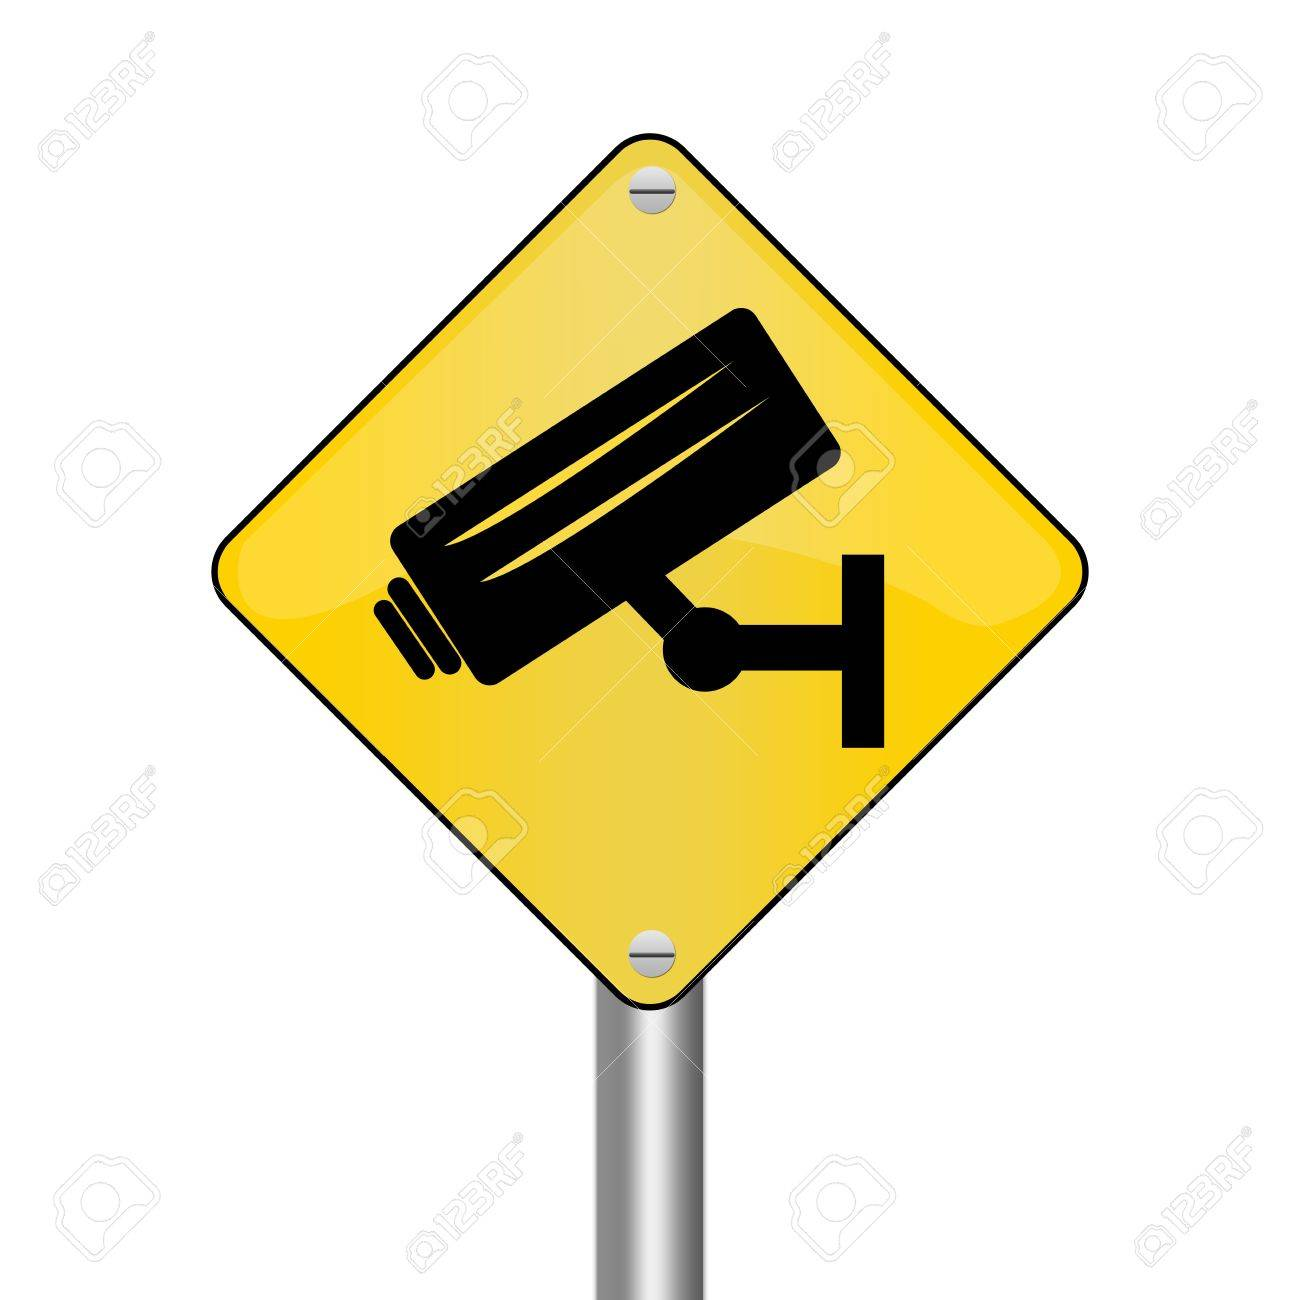 Yellow Rhombus Road Sign For No Trespassing With CCTV Sign Isolated on White Background Stock Photo - 17928092